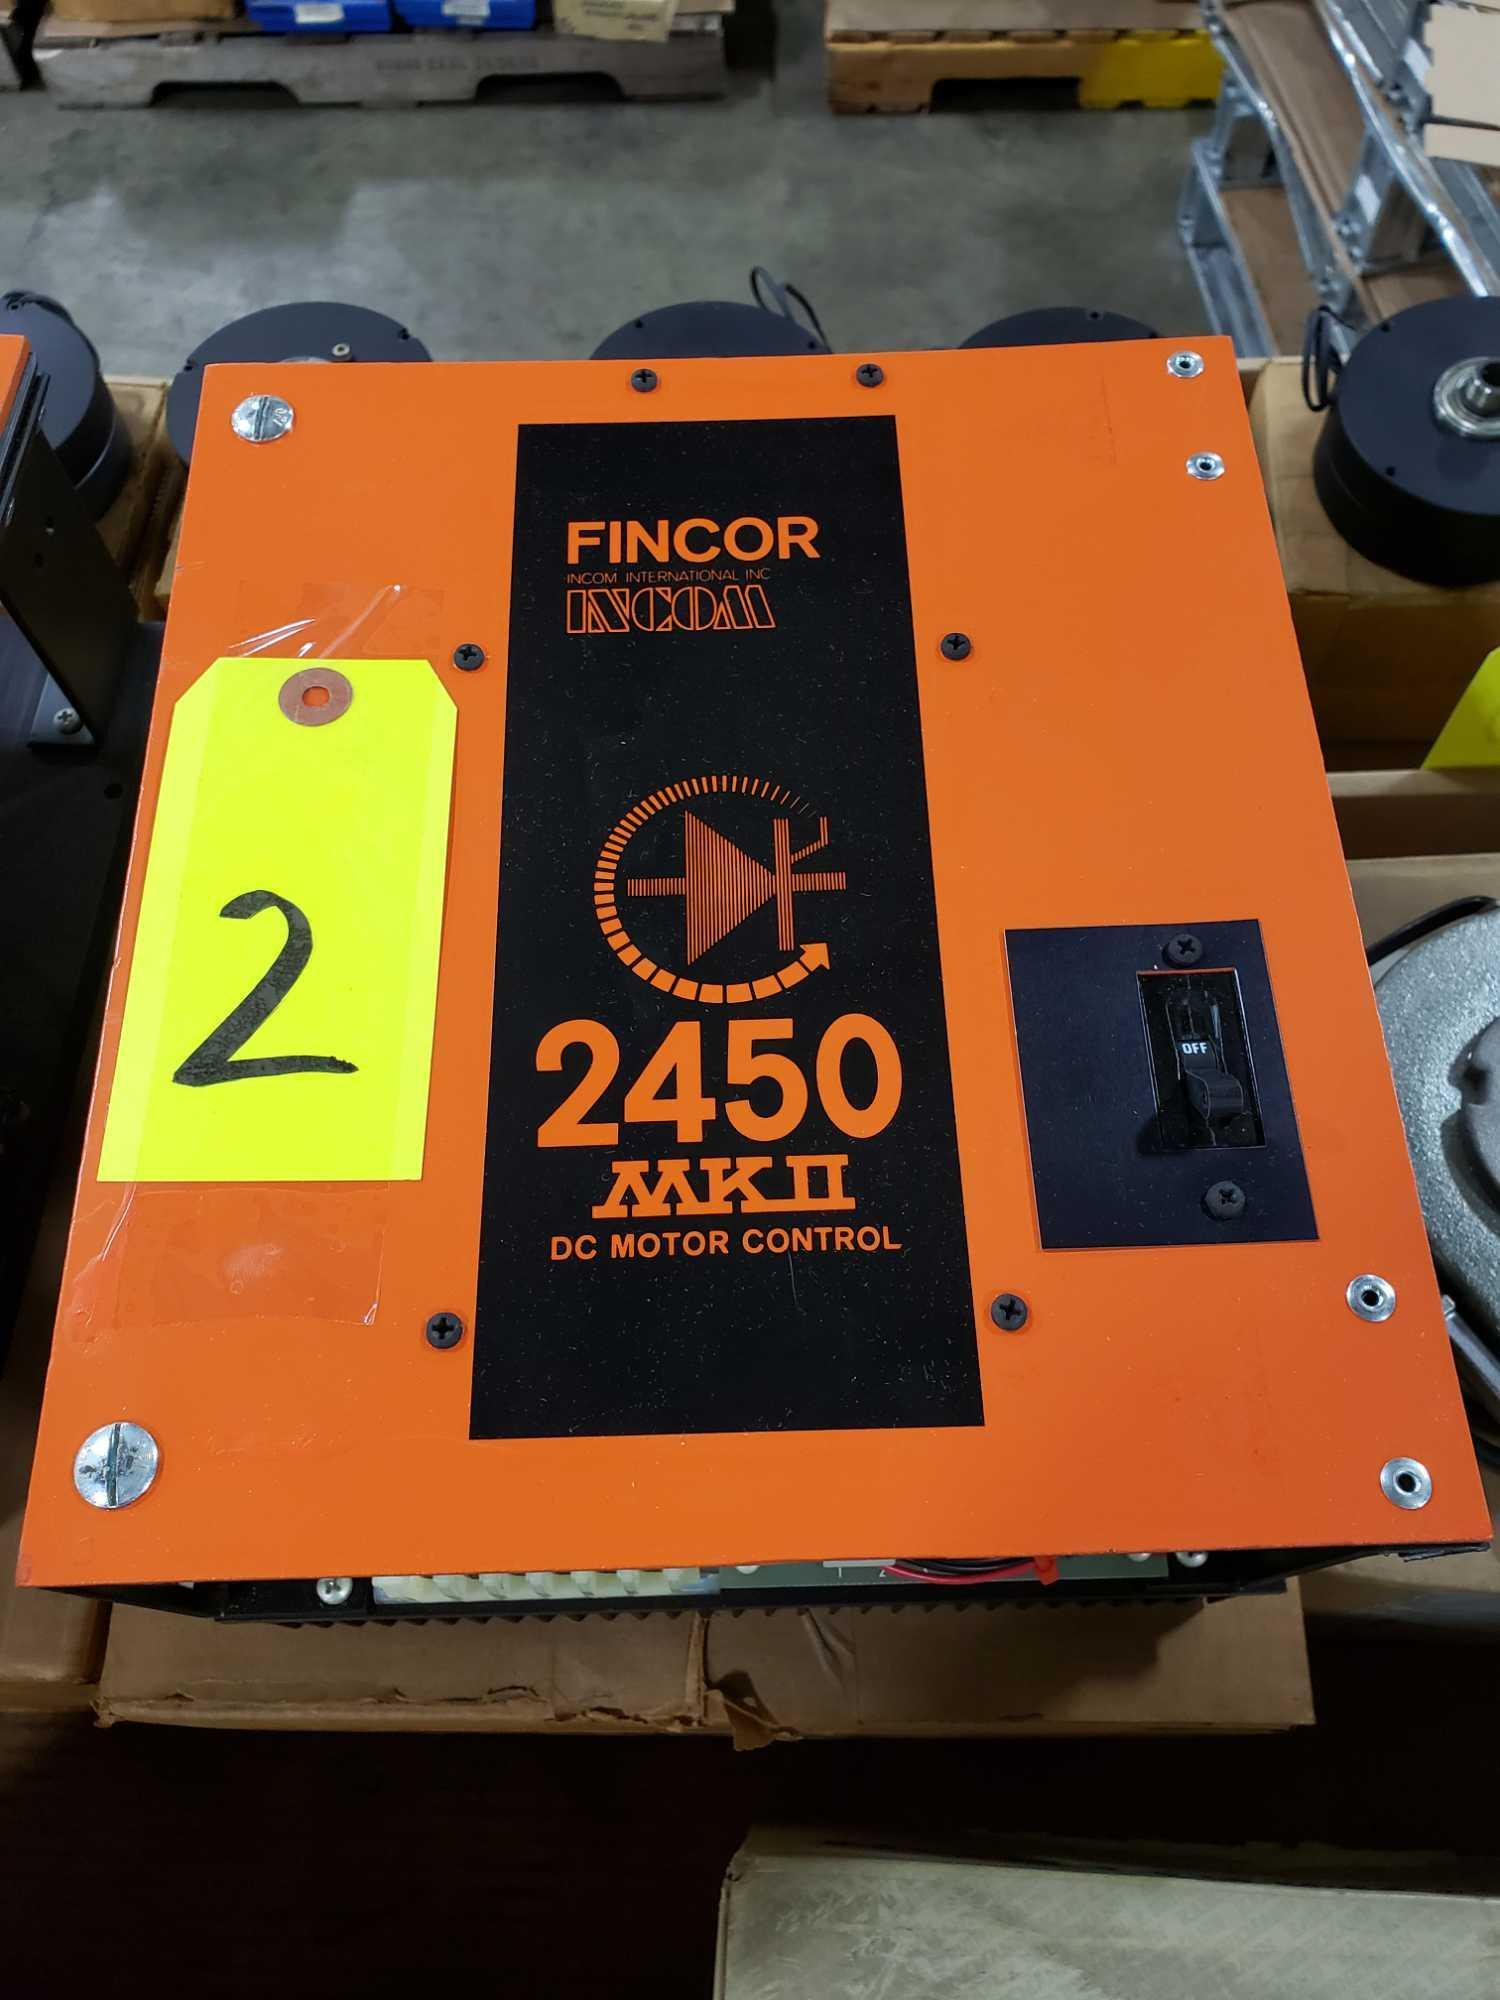 Fincor DC motor control model 2450 MKII part number 2453, 5hp 230v. New in box. - Image 3 of 3